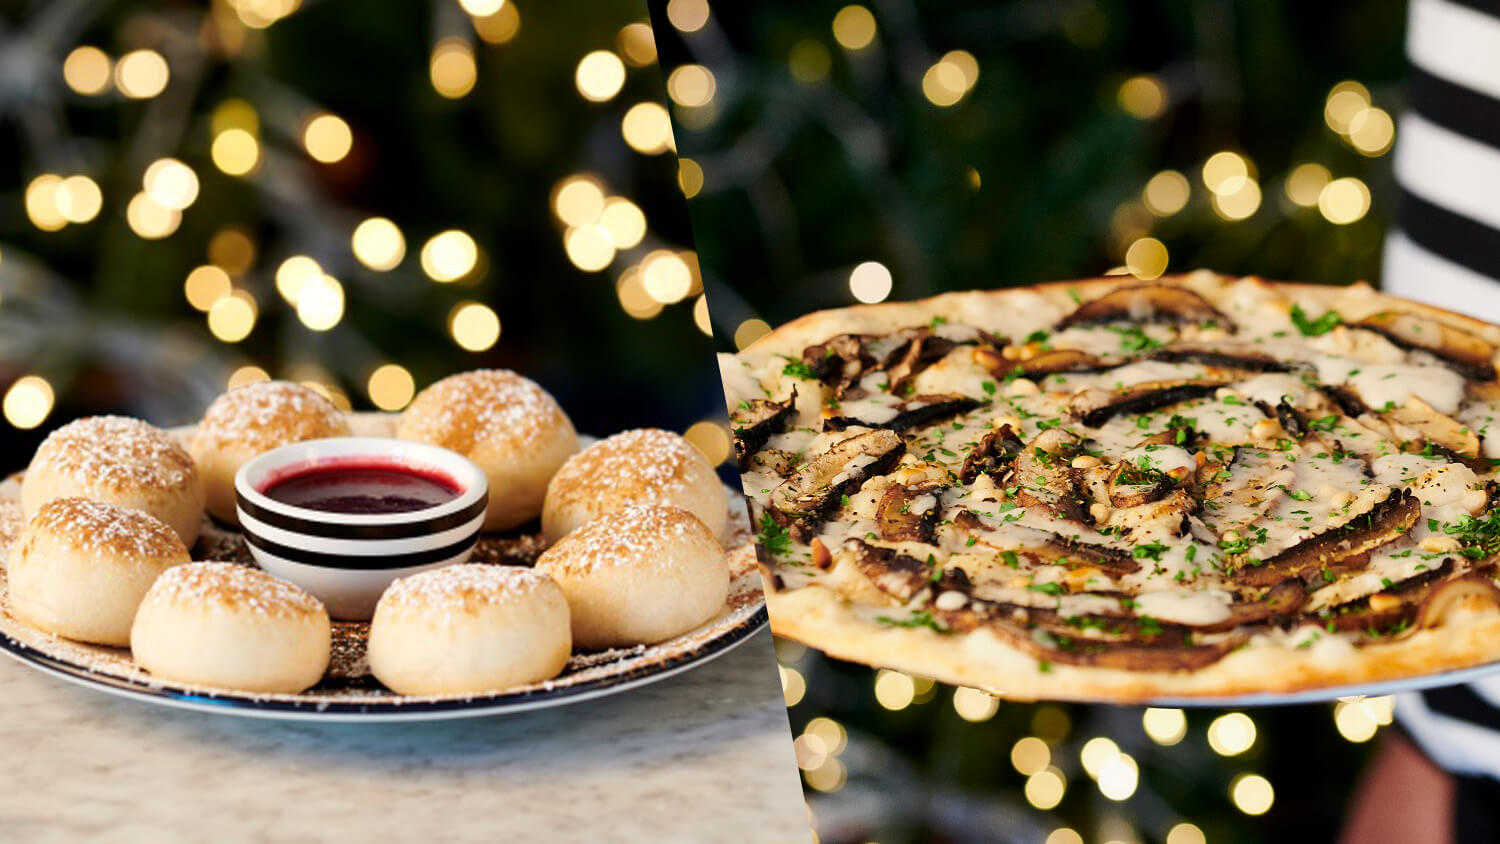 Vegan Christmas Pine Nut and Mushroom Pizza Coming to PizzaExpress UK